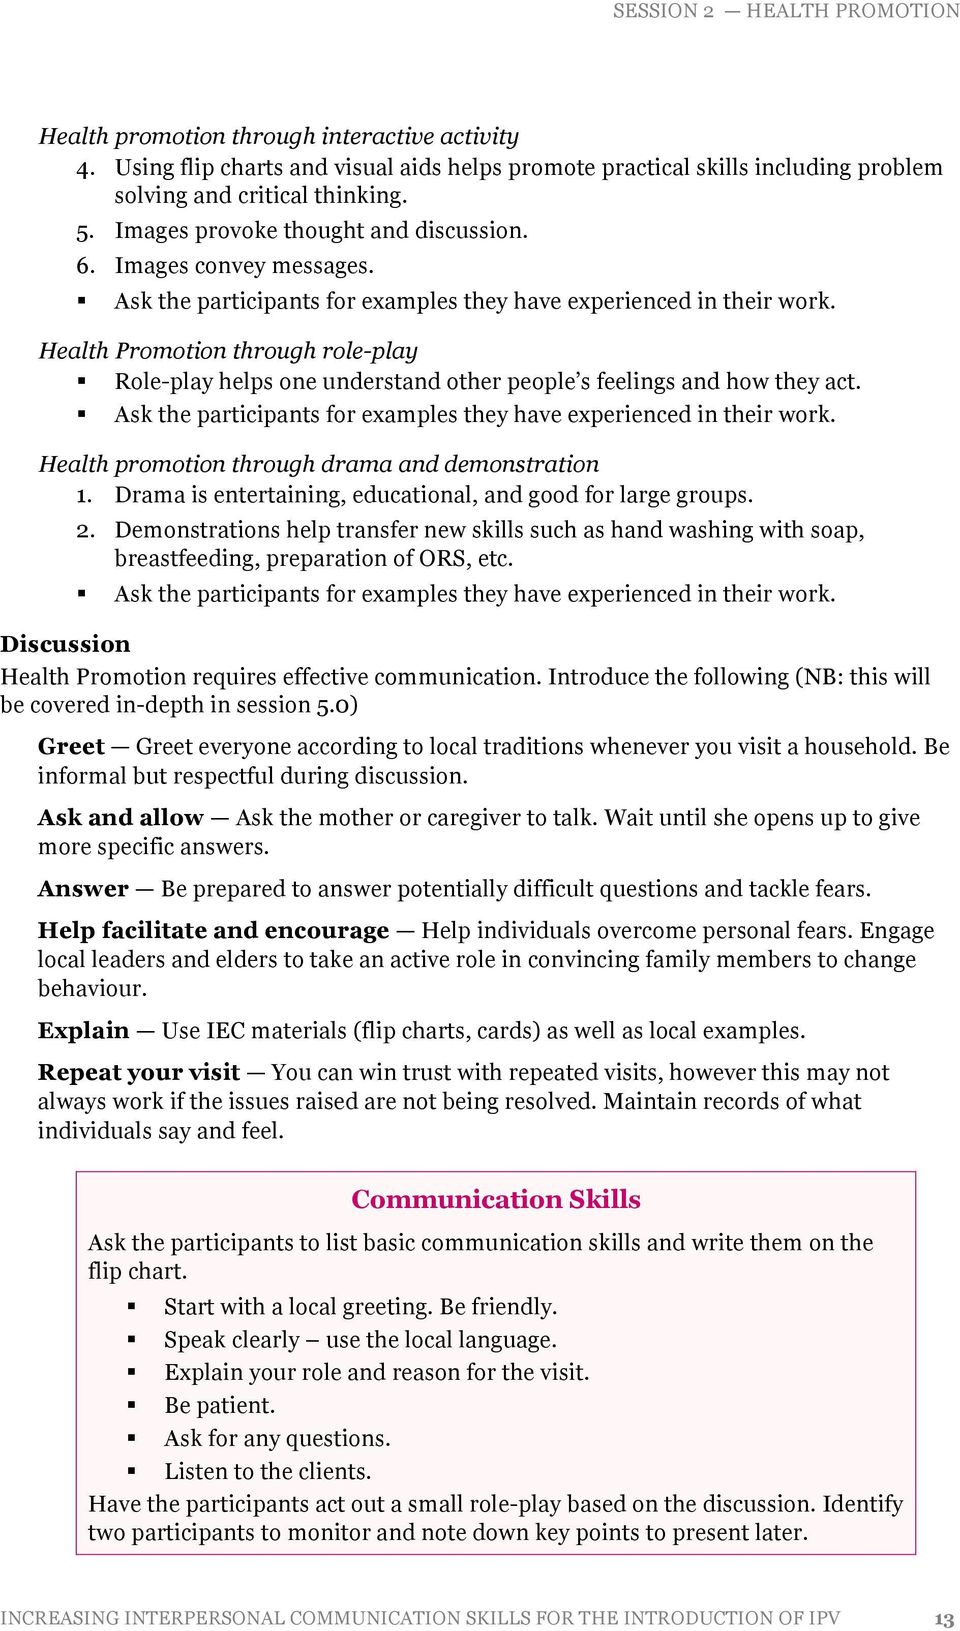 Health Promotion through role-play Role-play helps one understand other people s feelings and how they act. Ask the participants for examples they have experienced in their work.